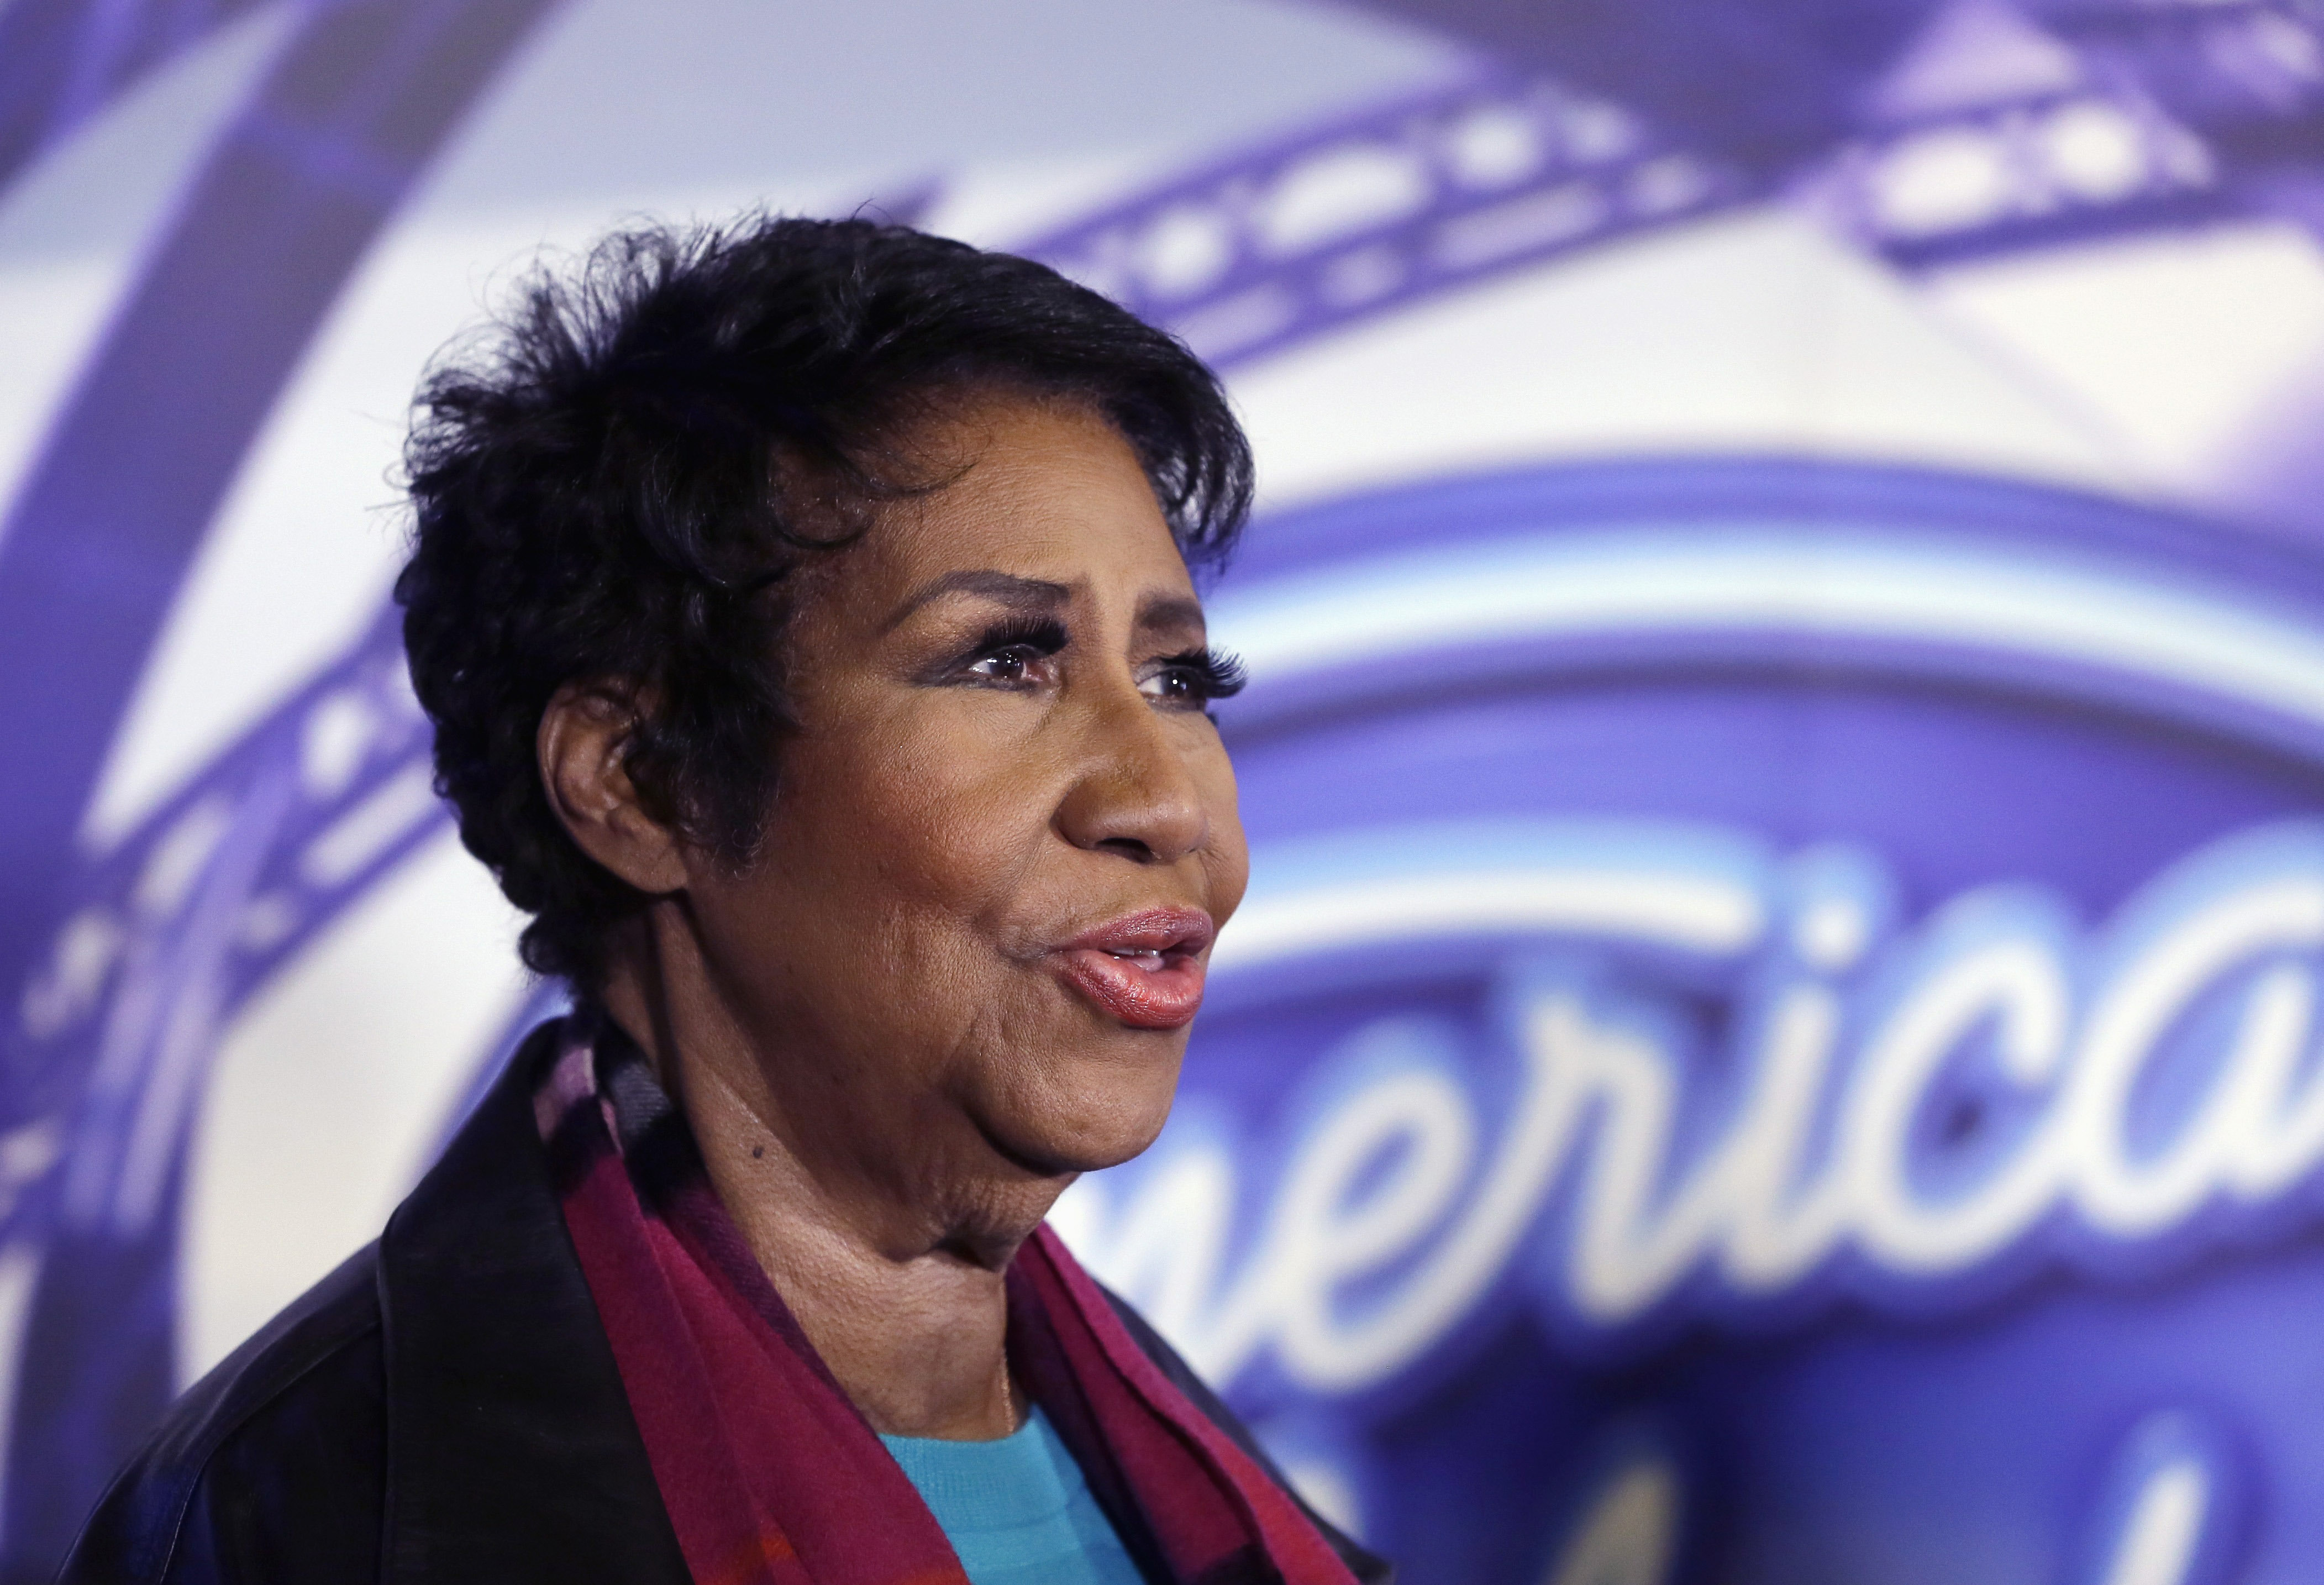 Aretha Franklin sings praises of Illinois after highway help